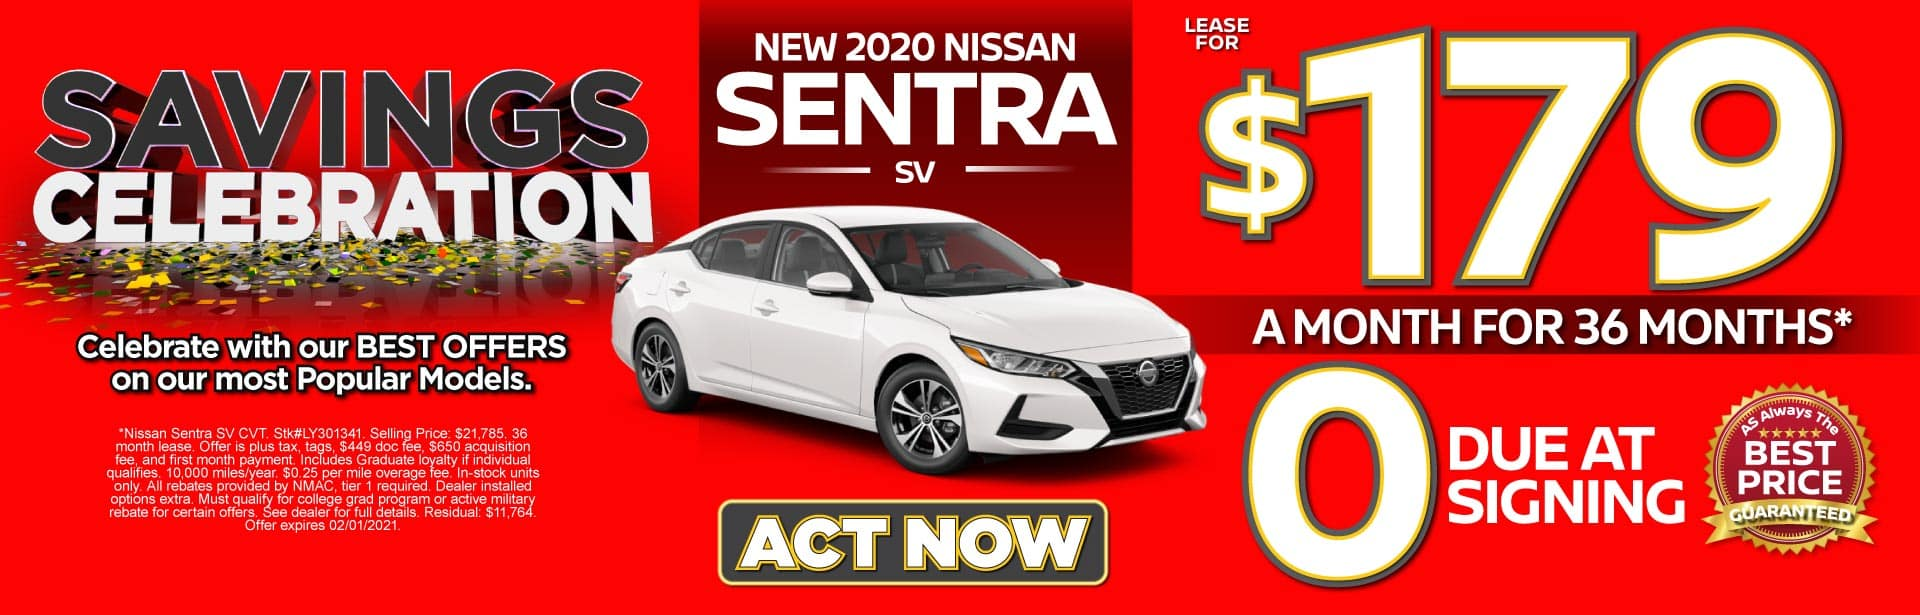 2020 Nissan Sentra $179 a month for 36 months* ZERO due at signing. Act Now.